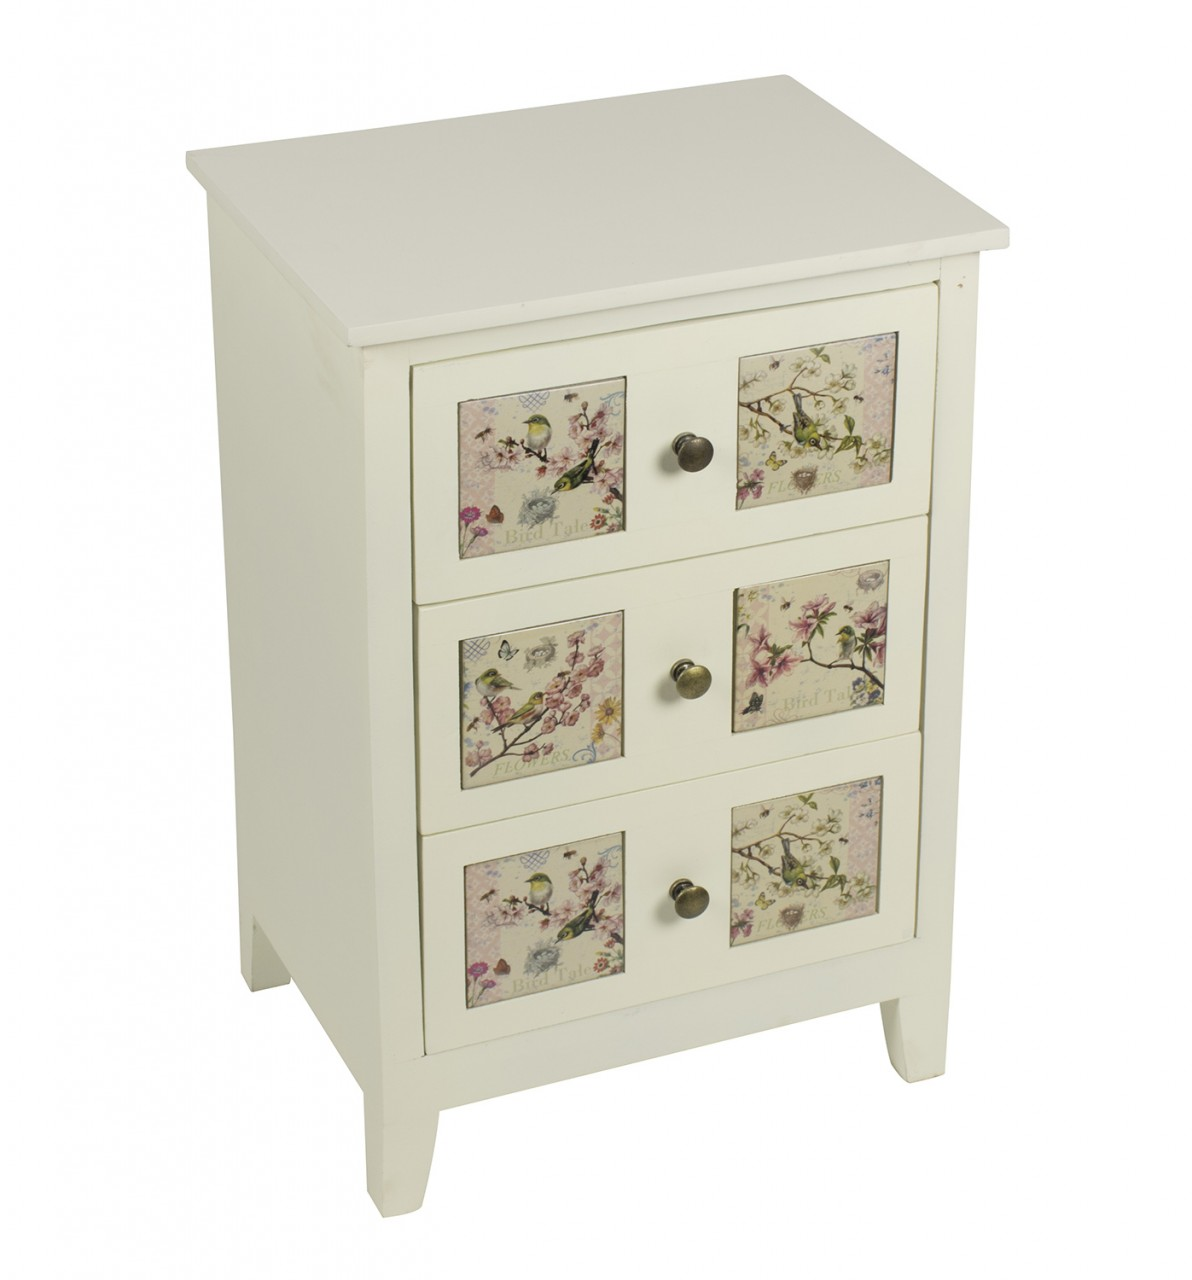 Floral Fronted 3 Drawer Chest of Drawers